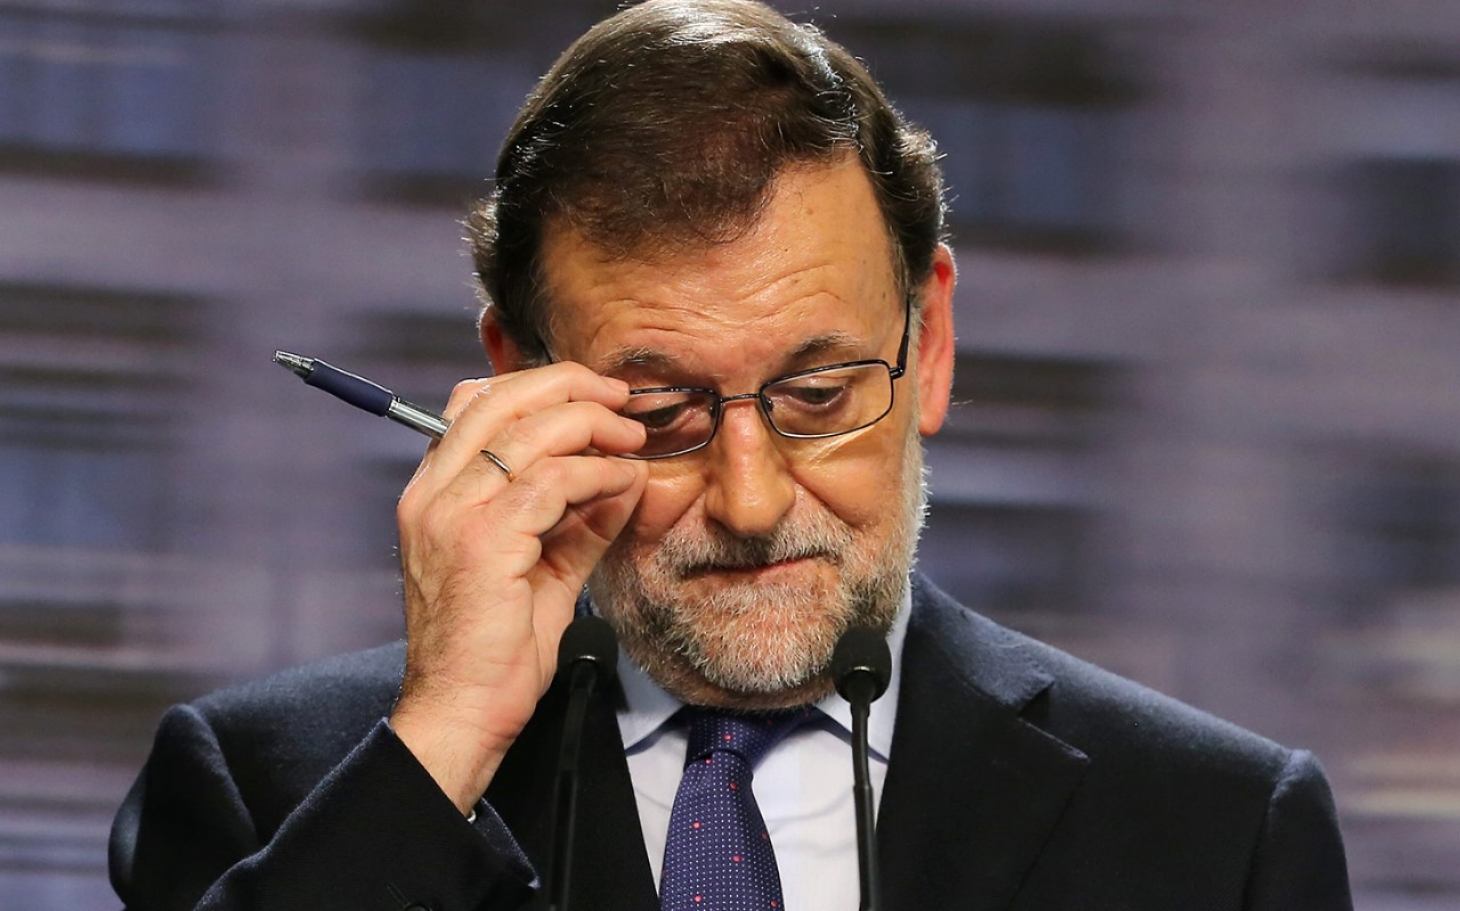 Spain's Socialists Won't Support Ruling Party | Al Jazeera America